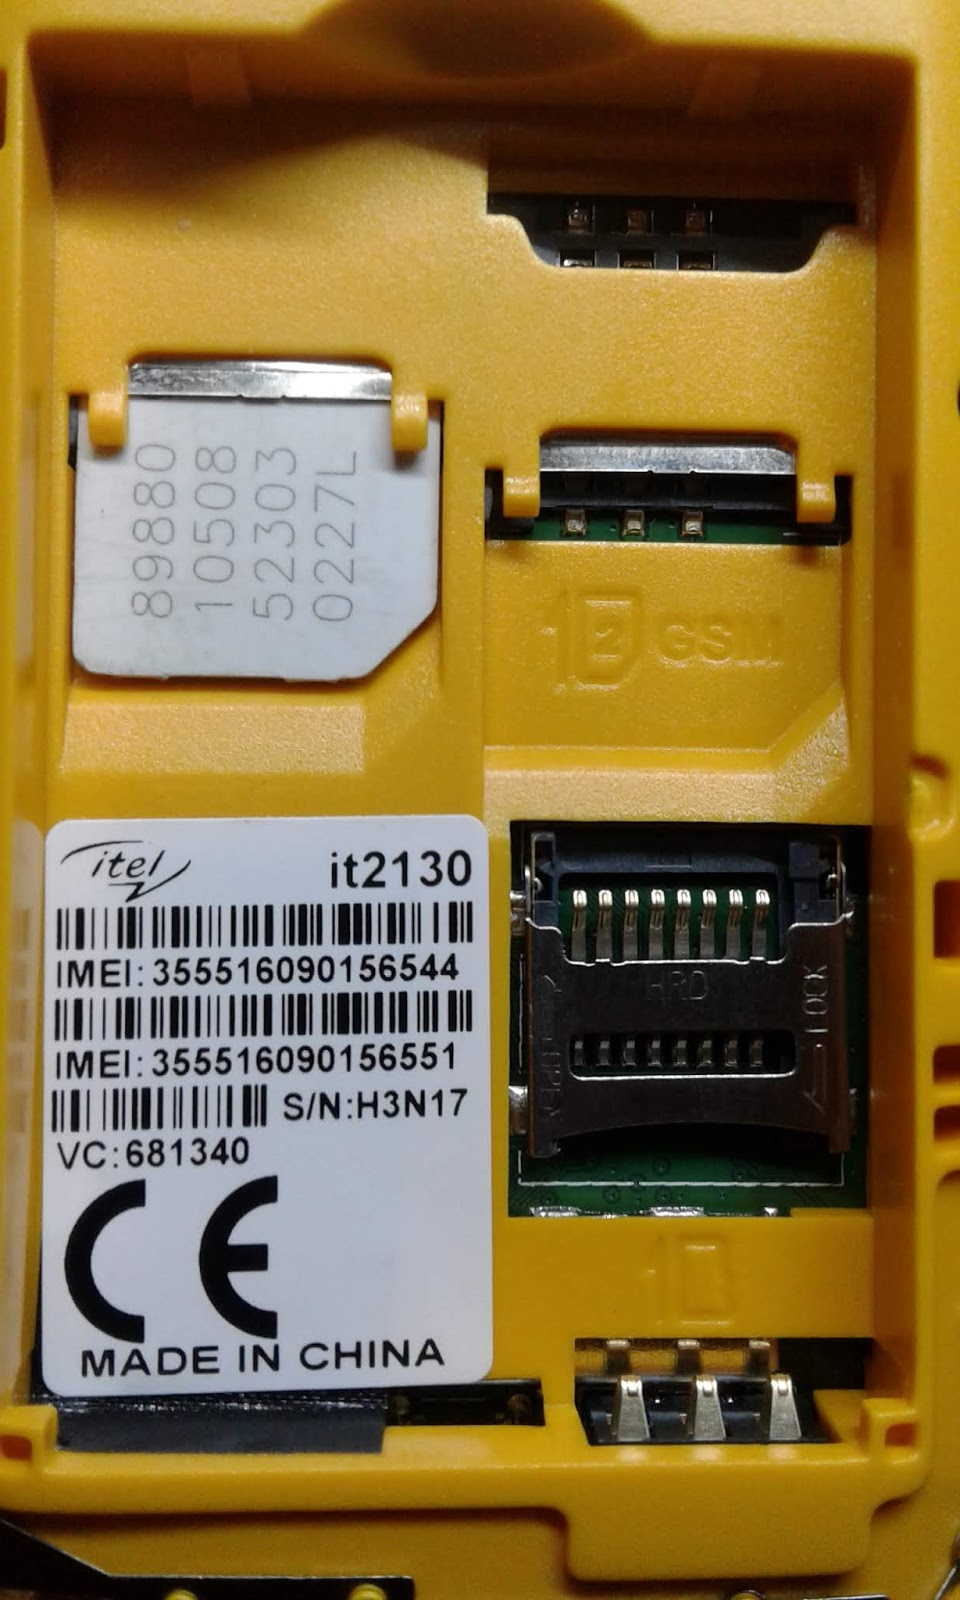 itel 2130 mtk6261 flash file without password - waiting for future